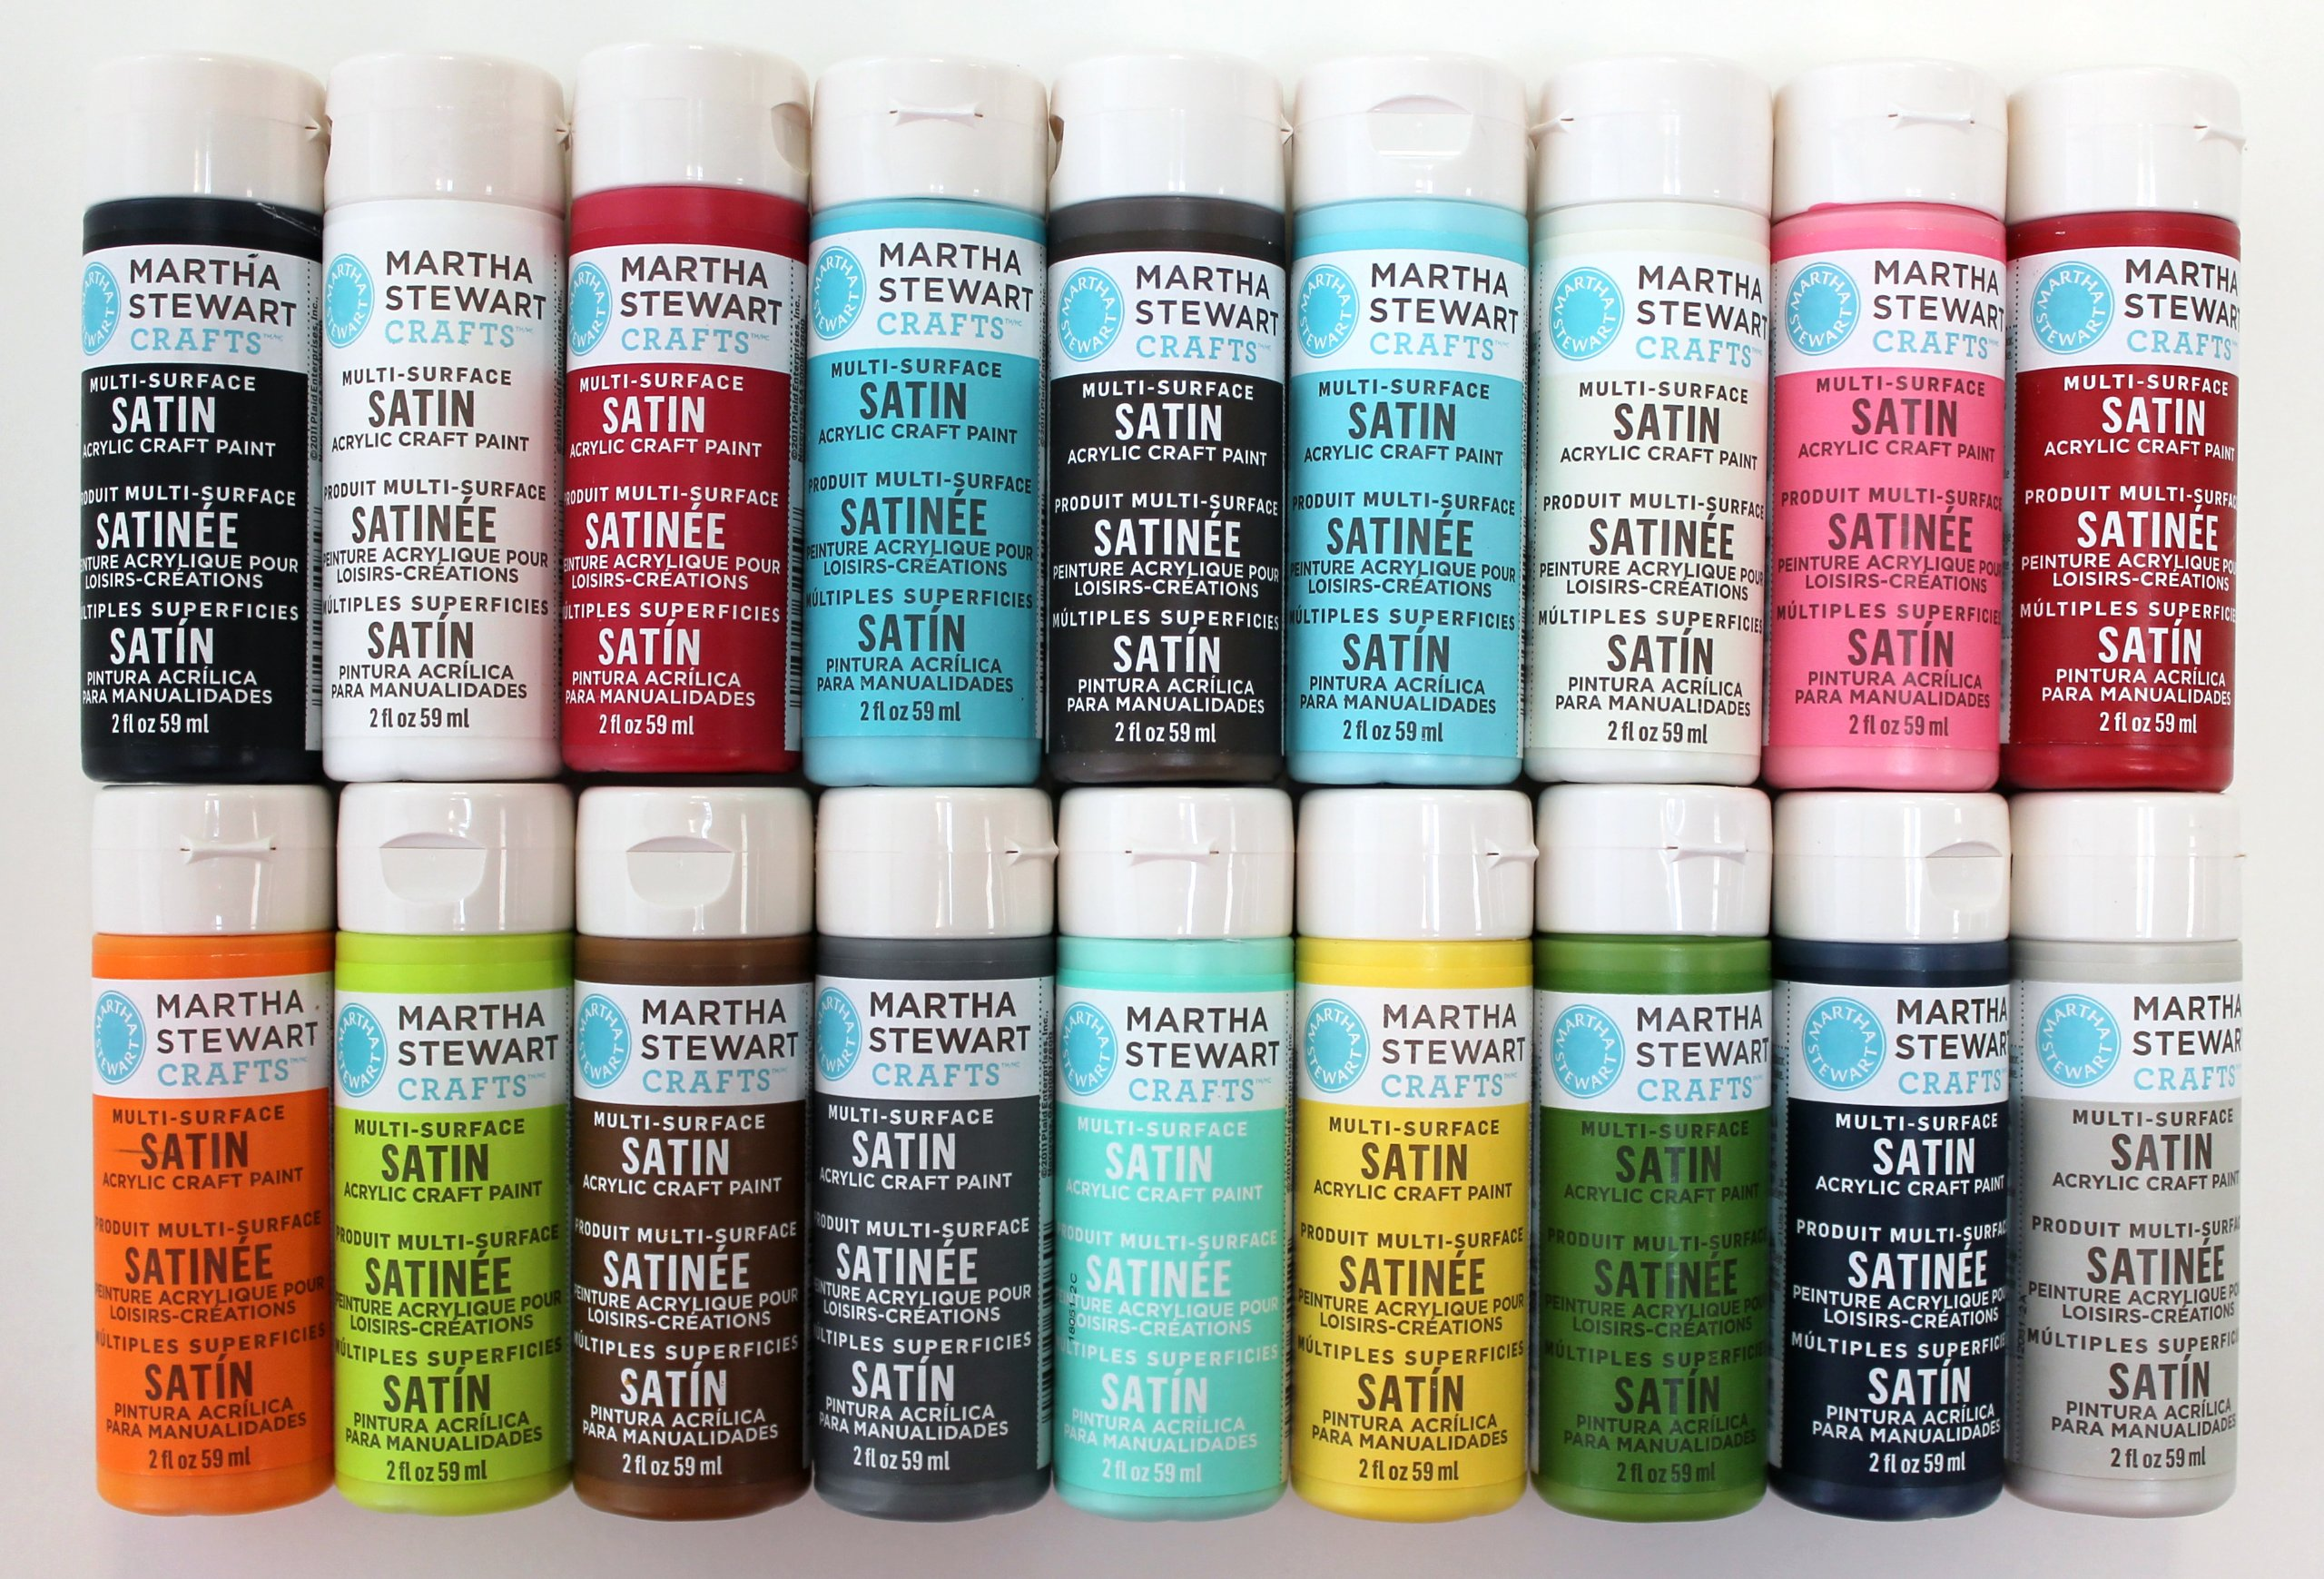 Martha Stewart Crafts Multi-Surface Satin Acrylic Craft Paint (2-Ounce), PROMO767C Best Selling Colors I